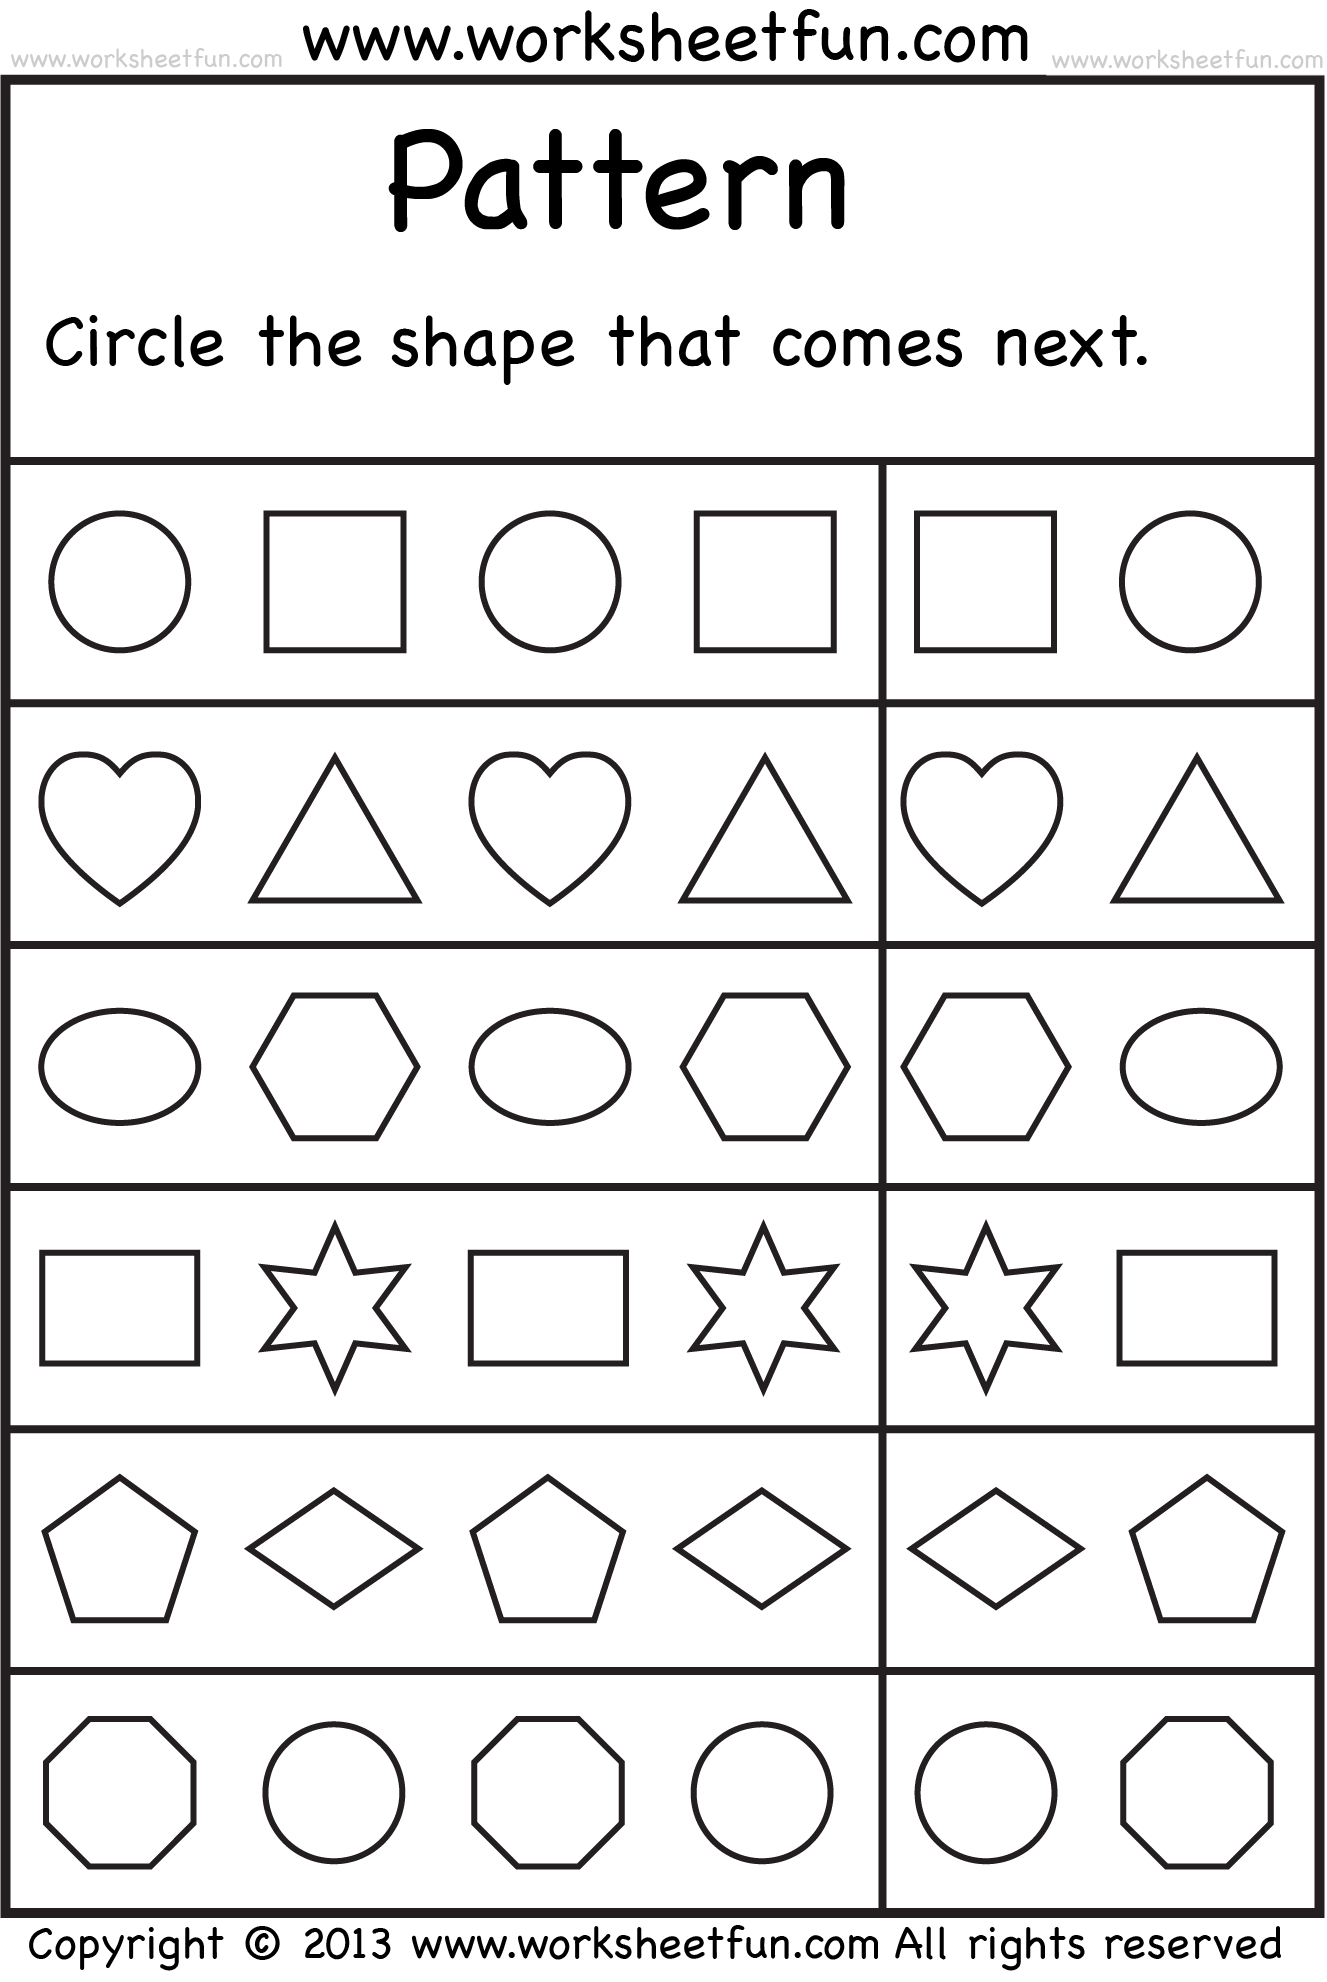 Weirdmailus  Gorgeous  Images About School Worksheets On Pinterest  Number Words  With Handsome  Images About School Worksheets On Pinterest  Number Words Alphabet Worksheets And Free Printable Kindergarten Worksheets With Agreeable Word Ladders Free Printable Worksheets Also Weather Comprehension Worksheets In Addition Worded Simultaneous Equations Worksheet And Pearson Physical Science Worksheets As Well As Eye Hand Coordination Worksheets Additionally Worksheets For Special Needs From Pinterestcom With Weirdmailus  Handsome  Images About School Worksheets On Pinterest  Number Words  With Agreeable  Images About School Worksheets On Pinterest  Number Words Alphabet Worksheets And Free Printable Kindergarten Worksheets And Gorgeous Word Ladders Free Printable Worksheets Also Weather Comprehension Worksheets In Addition Worded Simultaneous Equations Worksheet From Pinterestcom